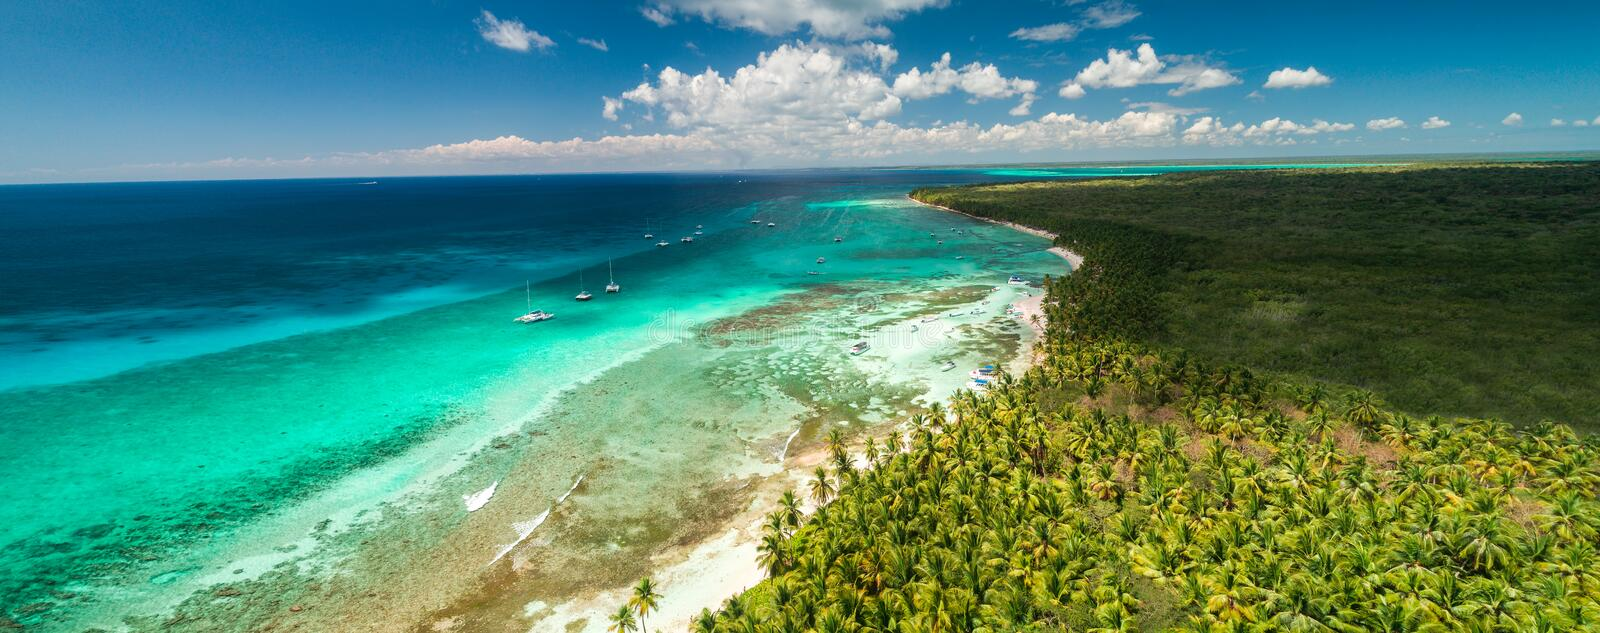 Aerial view of tropical beach. Saona island, Dominican republic.  stock photography